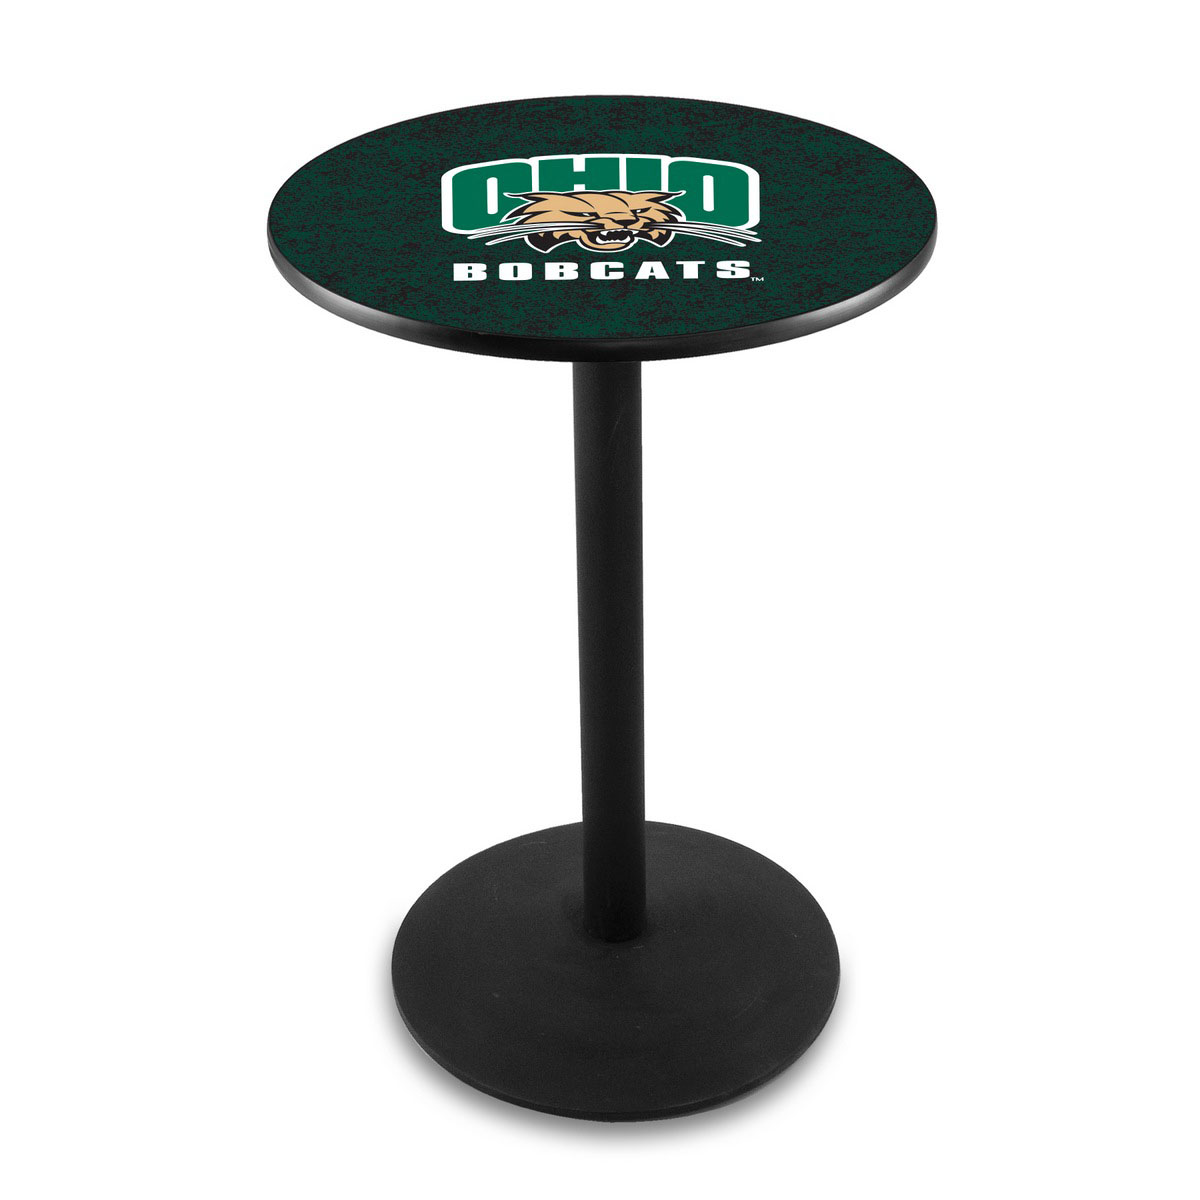 Select Ohio-University-Logo-Pub-Bar-Table-Round-Stand Product Picture 1672